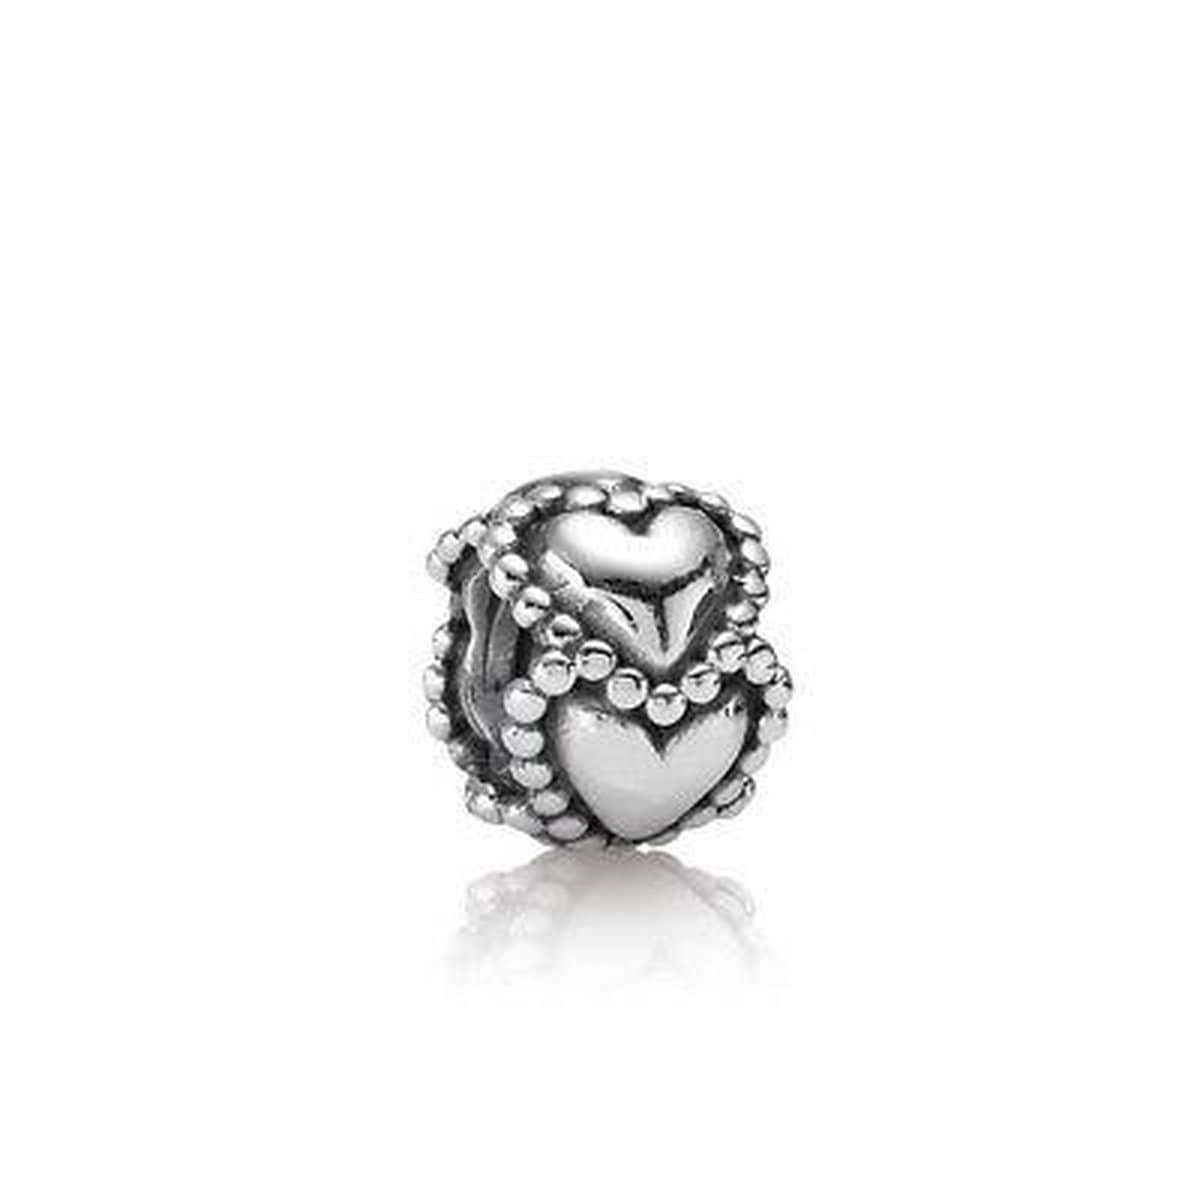 Everlasting Love Sterling Silver Charm - 790448